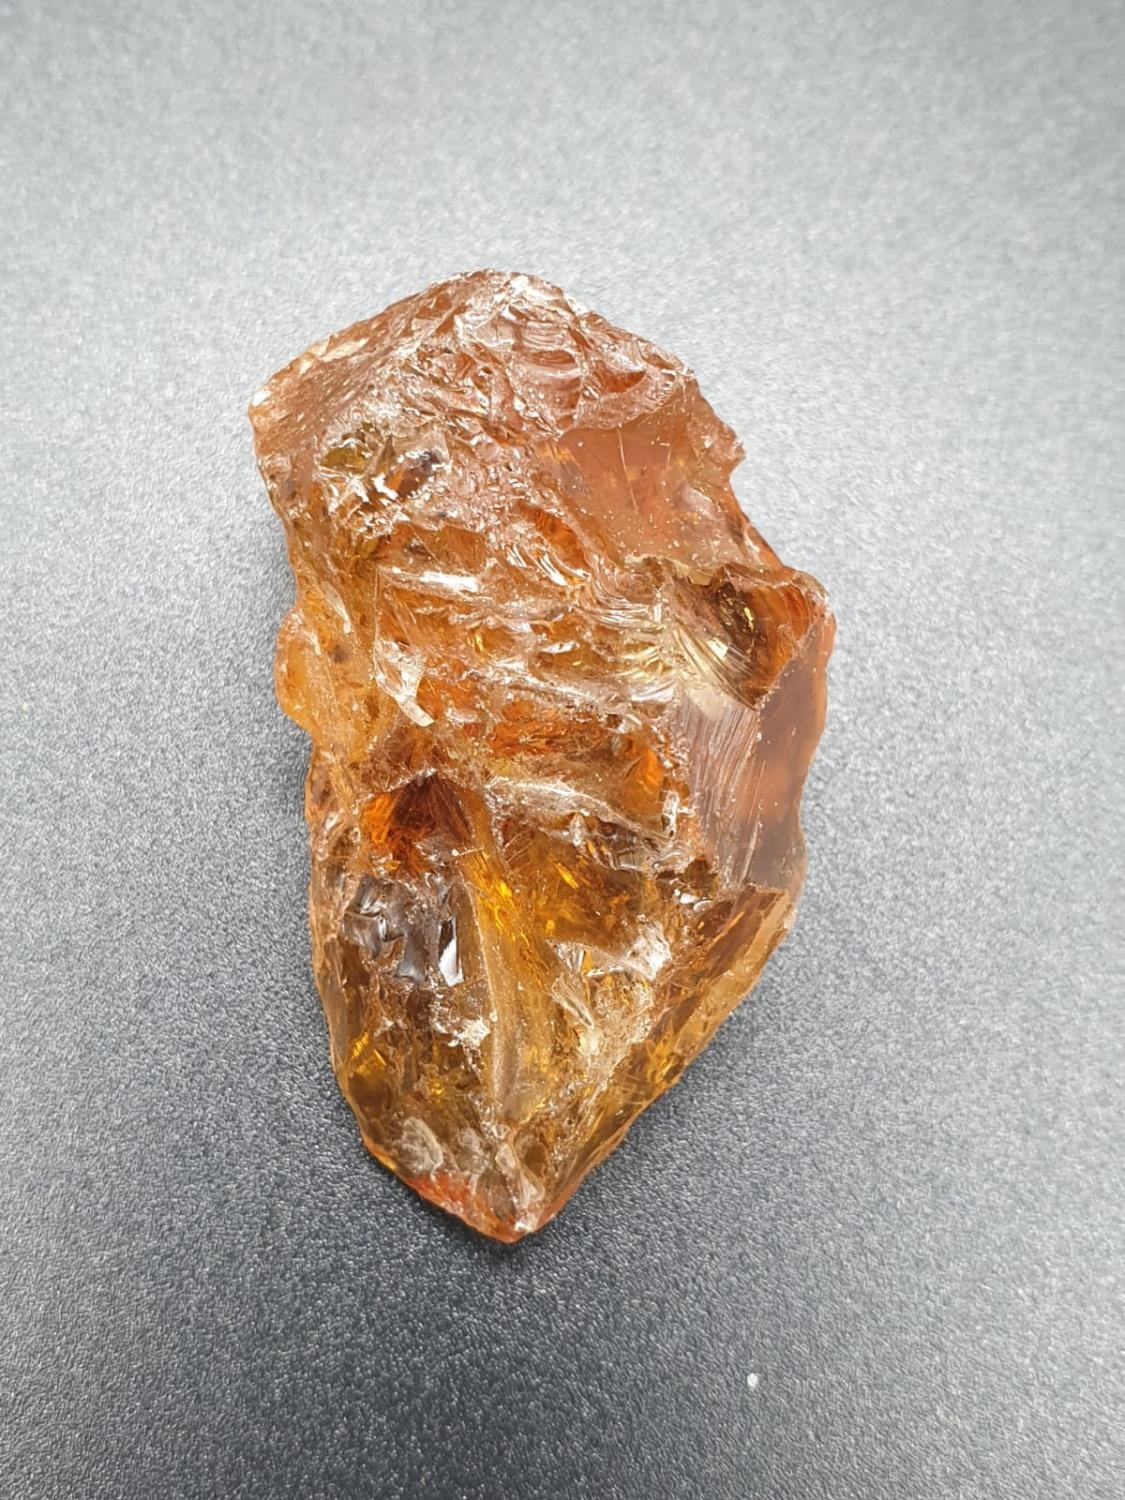 134.60 Ct Natural Citrine. Rough shape. ITLGR certified - Image 2 of 4